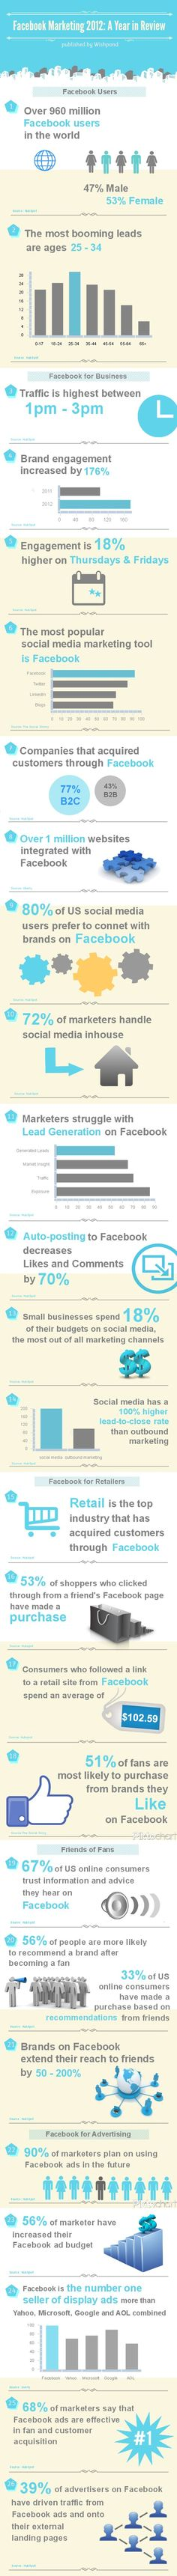 Social Commerce Infographic 15